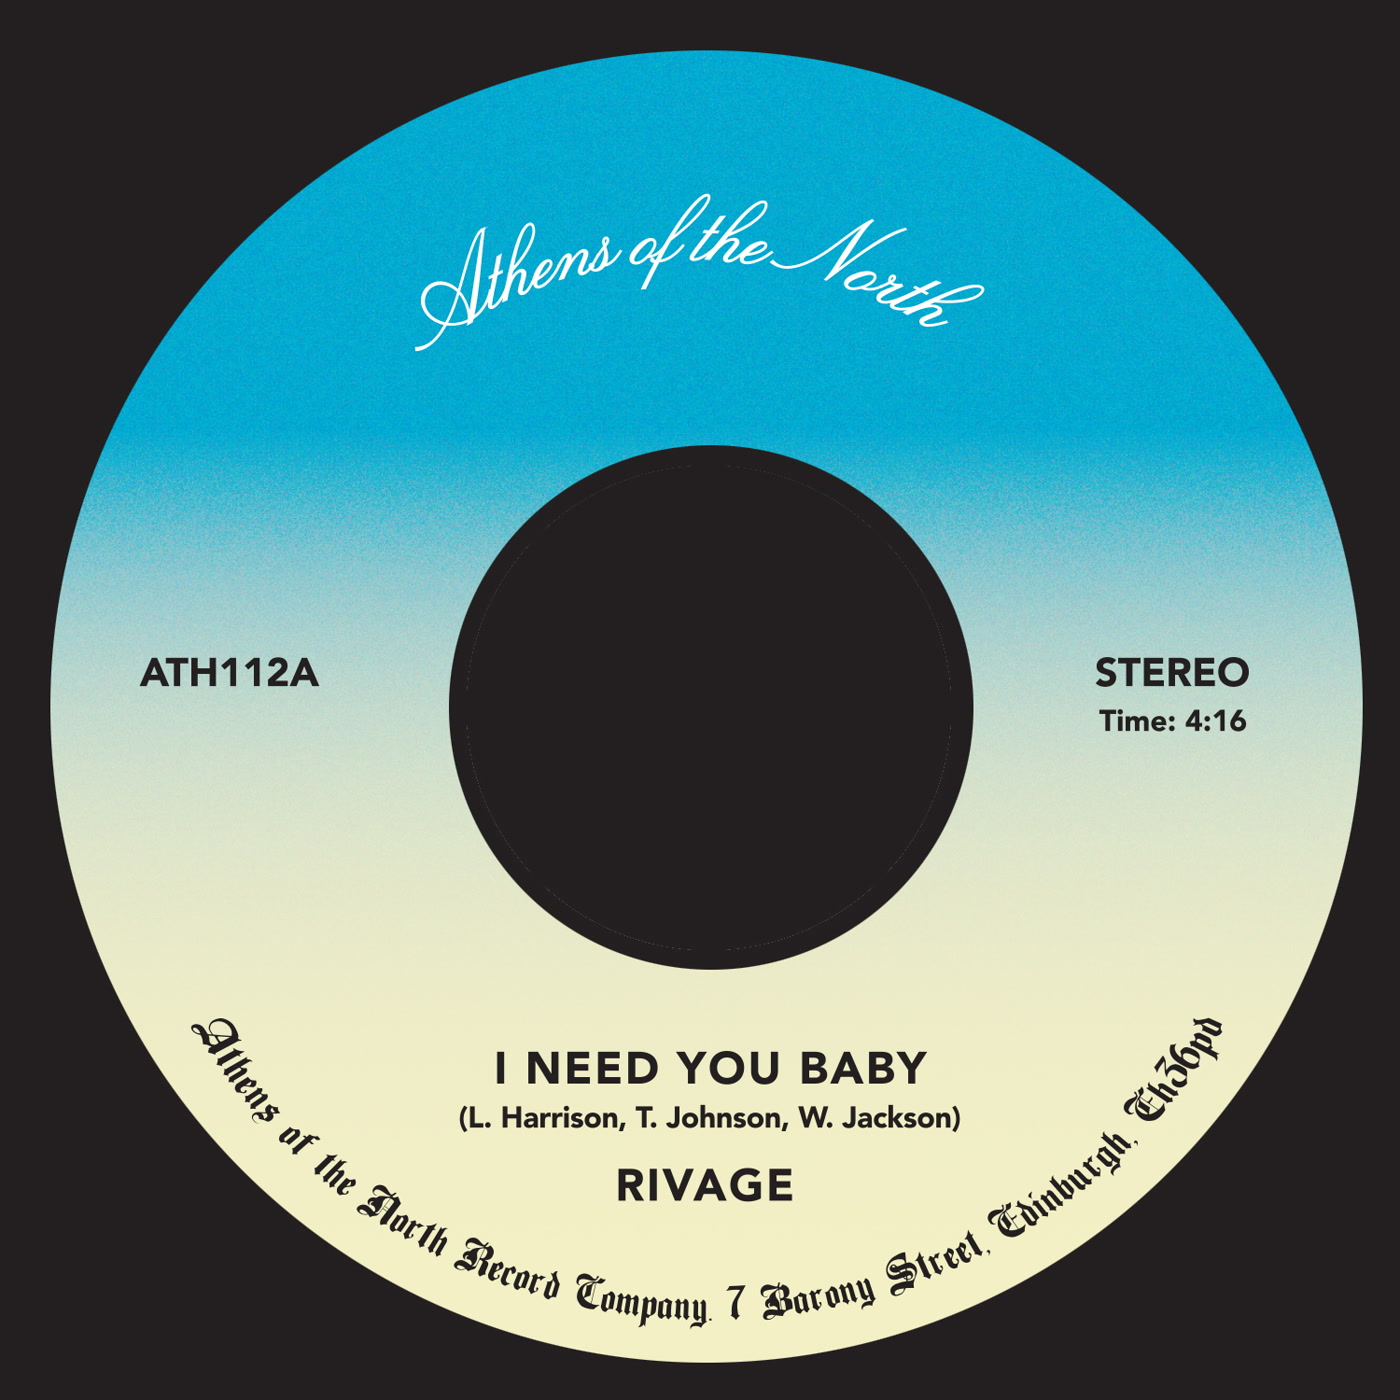 Rivage – I Need You Baby (Athens Of The North)